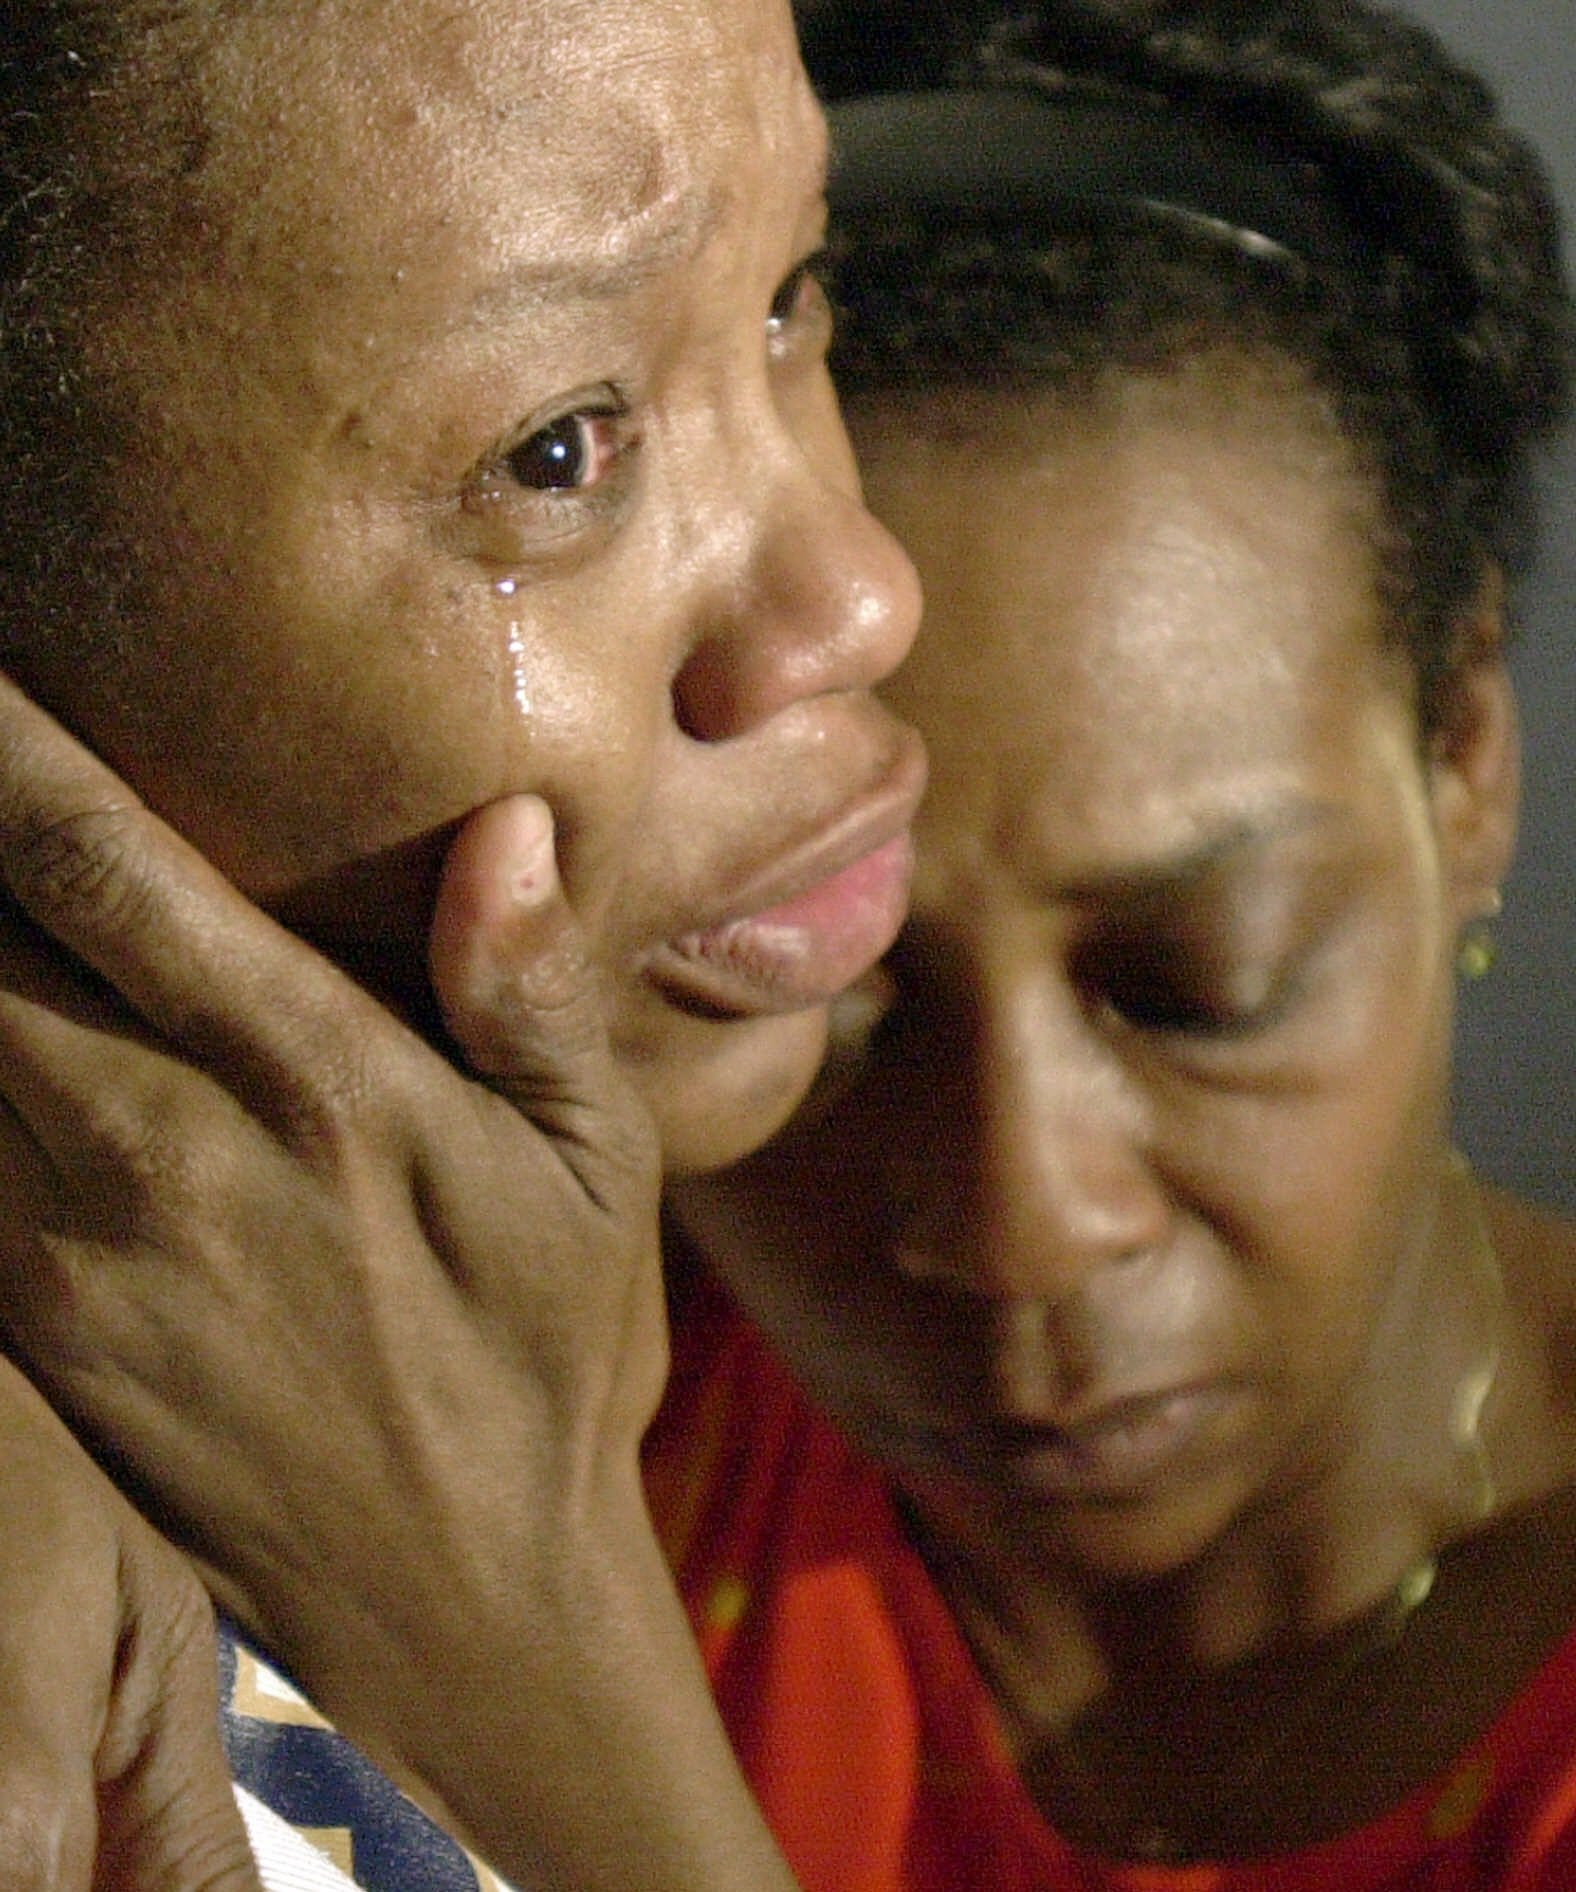 Shelia Smith, left, and Mary Bradley console one another Sunday, July 8, 2001, outside the Chicago apartment of Tracey Bradley, mother of Diamond, 3, and Tionda Bradley, who went missing from their home on the South Side on July 6, 2001.  Smith is Tracey's aunt and Mary Bradley is Tracey's mother and the children's grandmother.